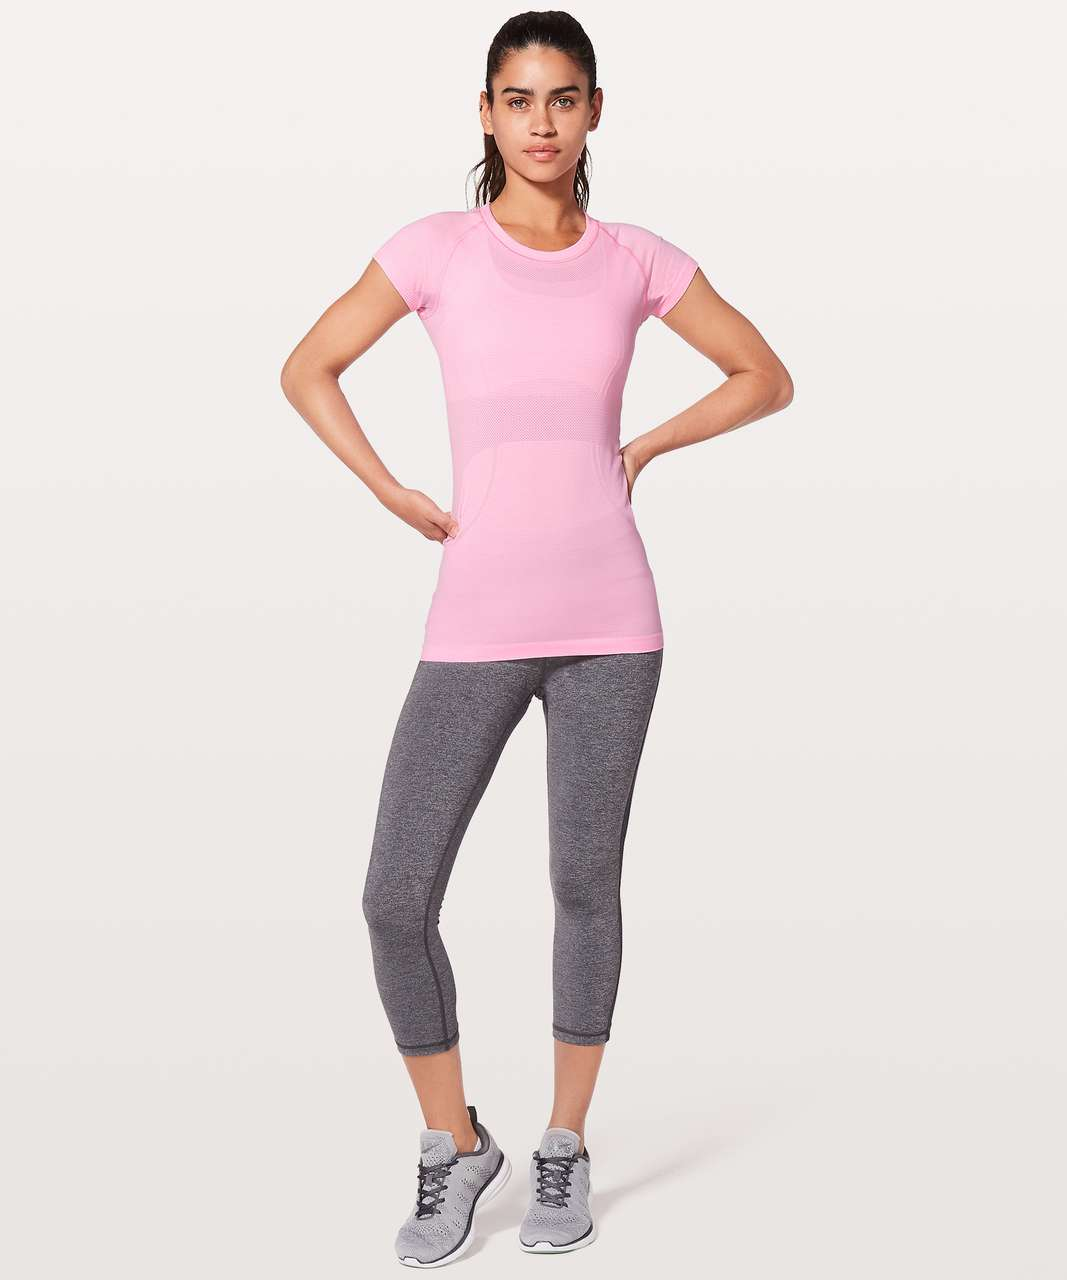 Lululemon Swiftly Tech Short Sleeve Crew - Miami Pink / White